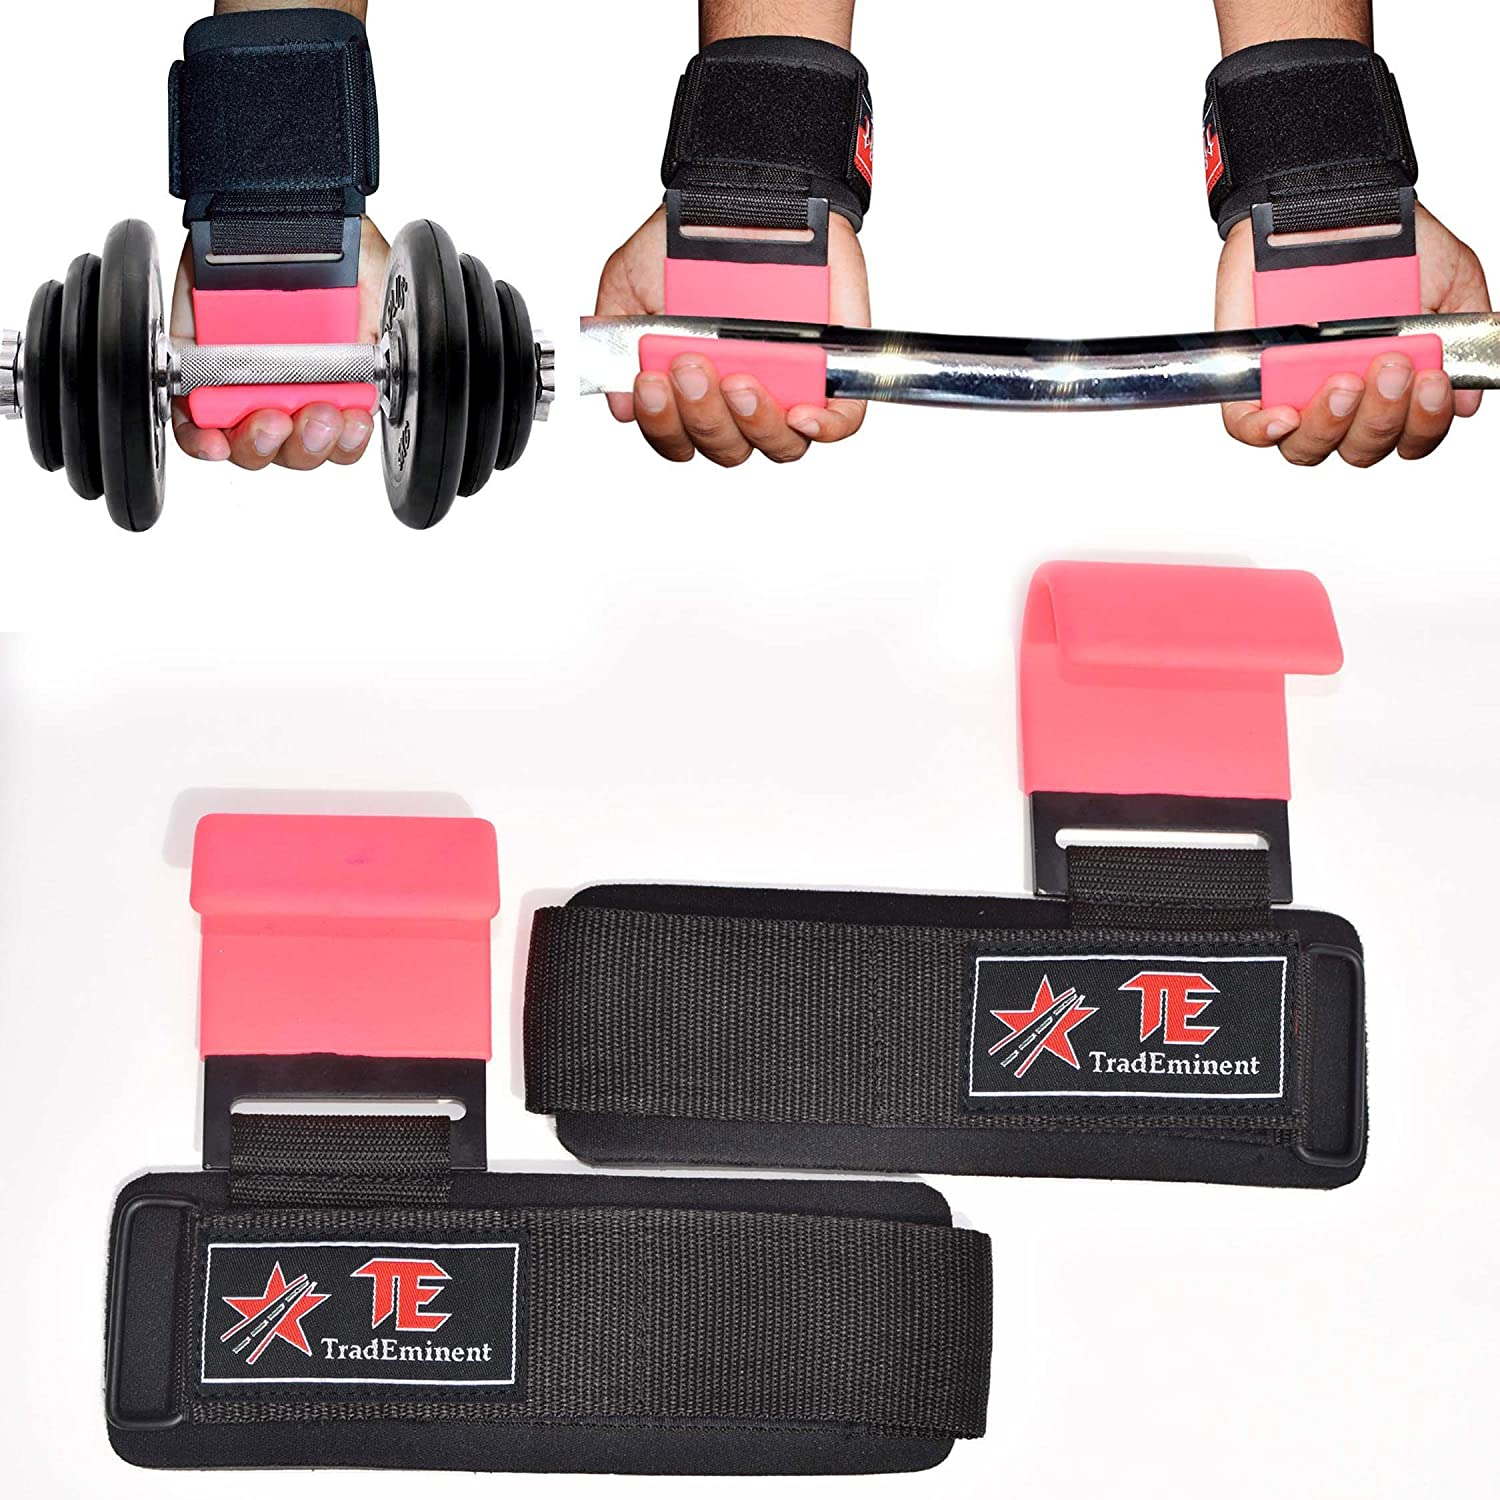 Lifting Wrist Support Weight Gym Straps Bar Wraps Grips Training Hook Pink New Trademinent